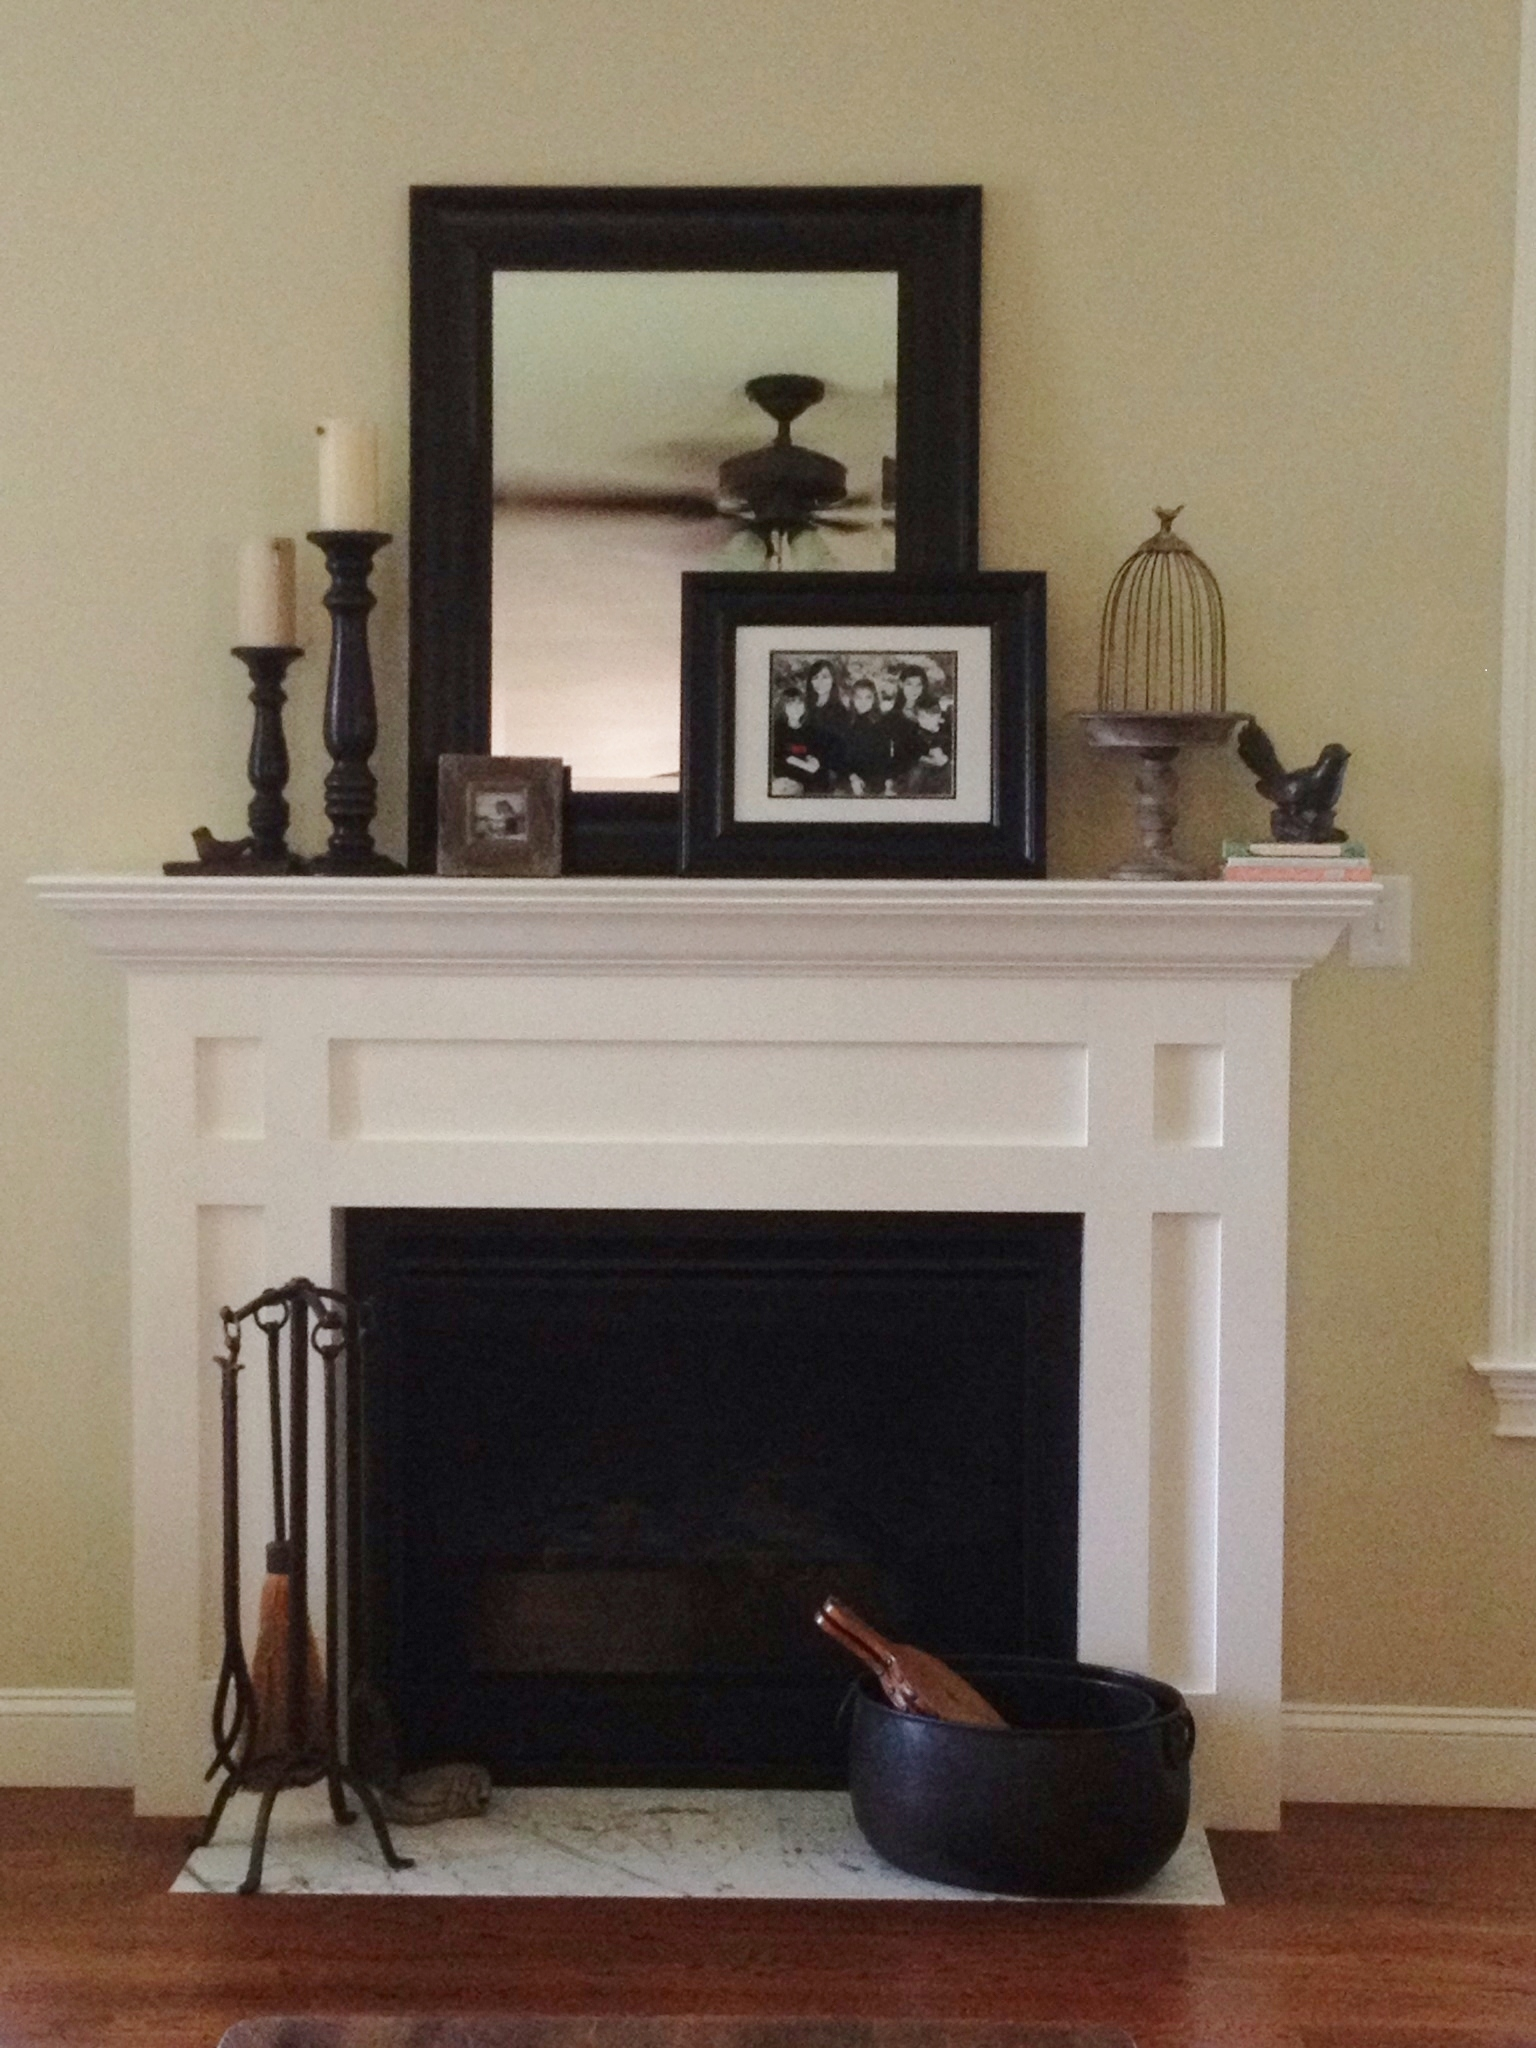 I Love The Layering Of The Mirror And Picture Frame In The Middle Within Mantlepiece Mirrors (Image 6 of 15)